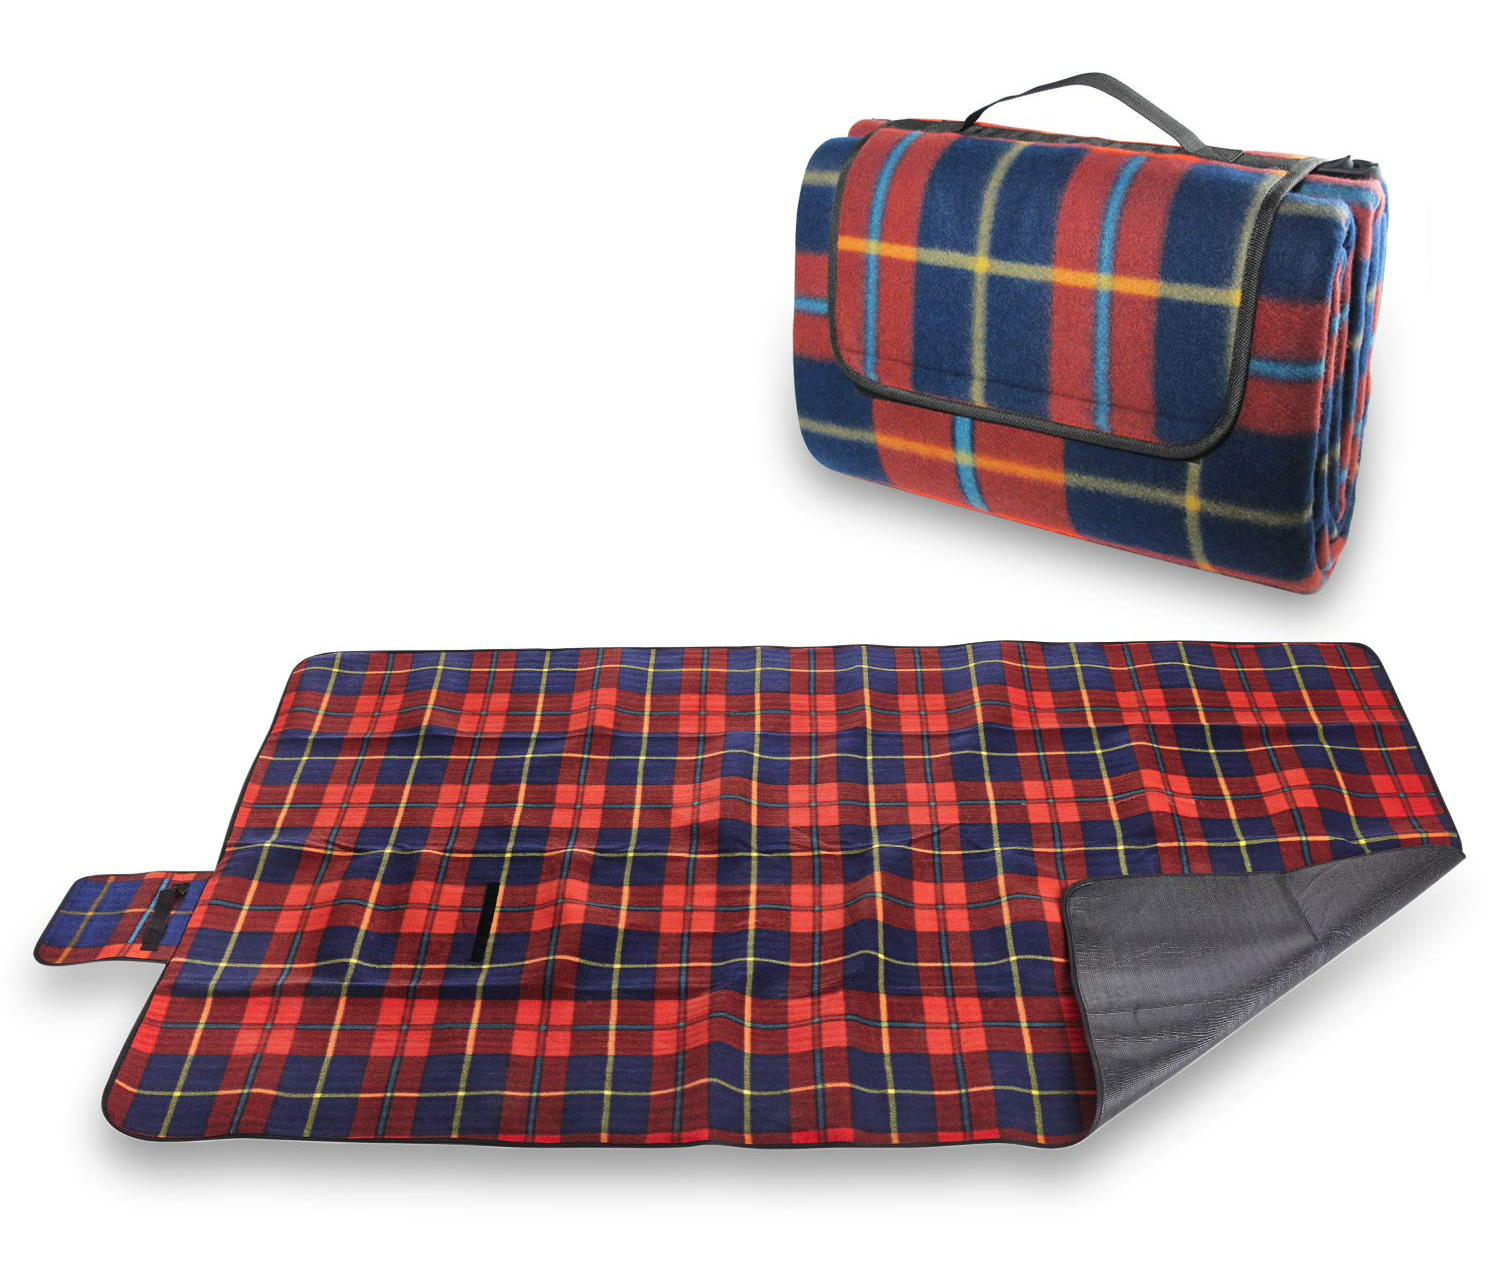 Pratico Outdoors Large Picnic and Outdoor Blanket, 60 x 80 inch, Red